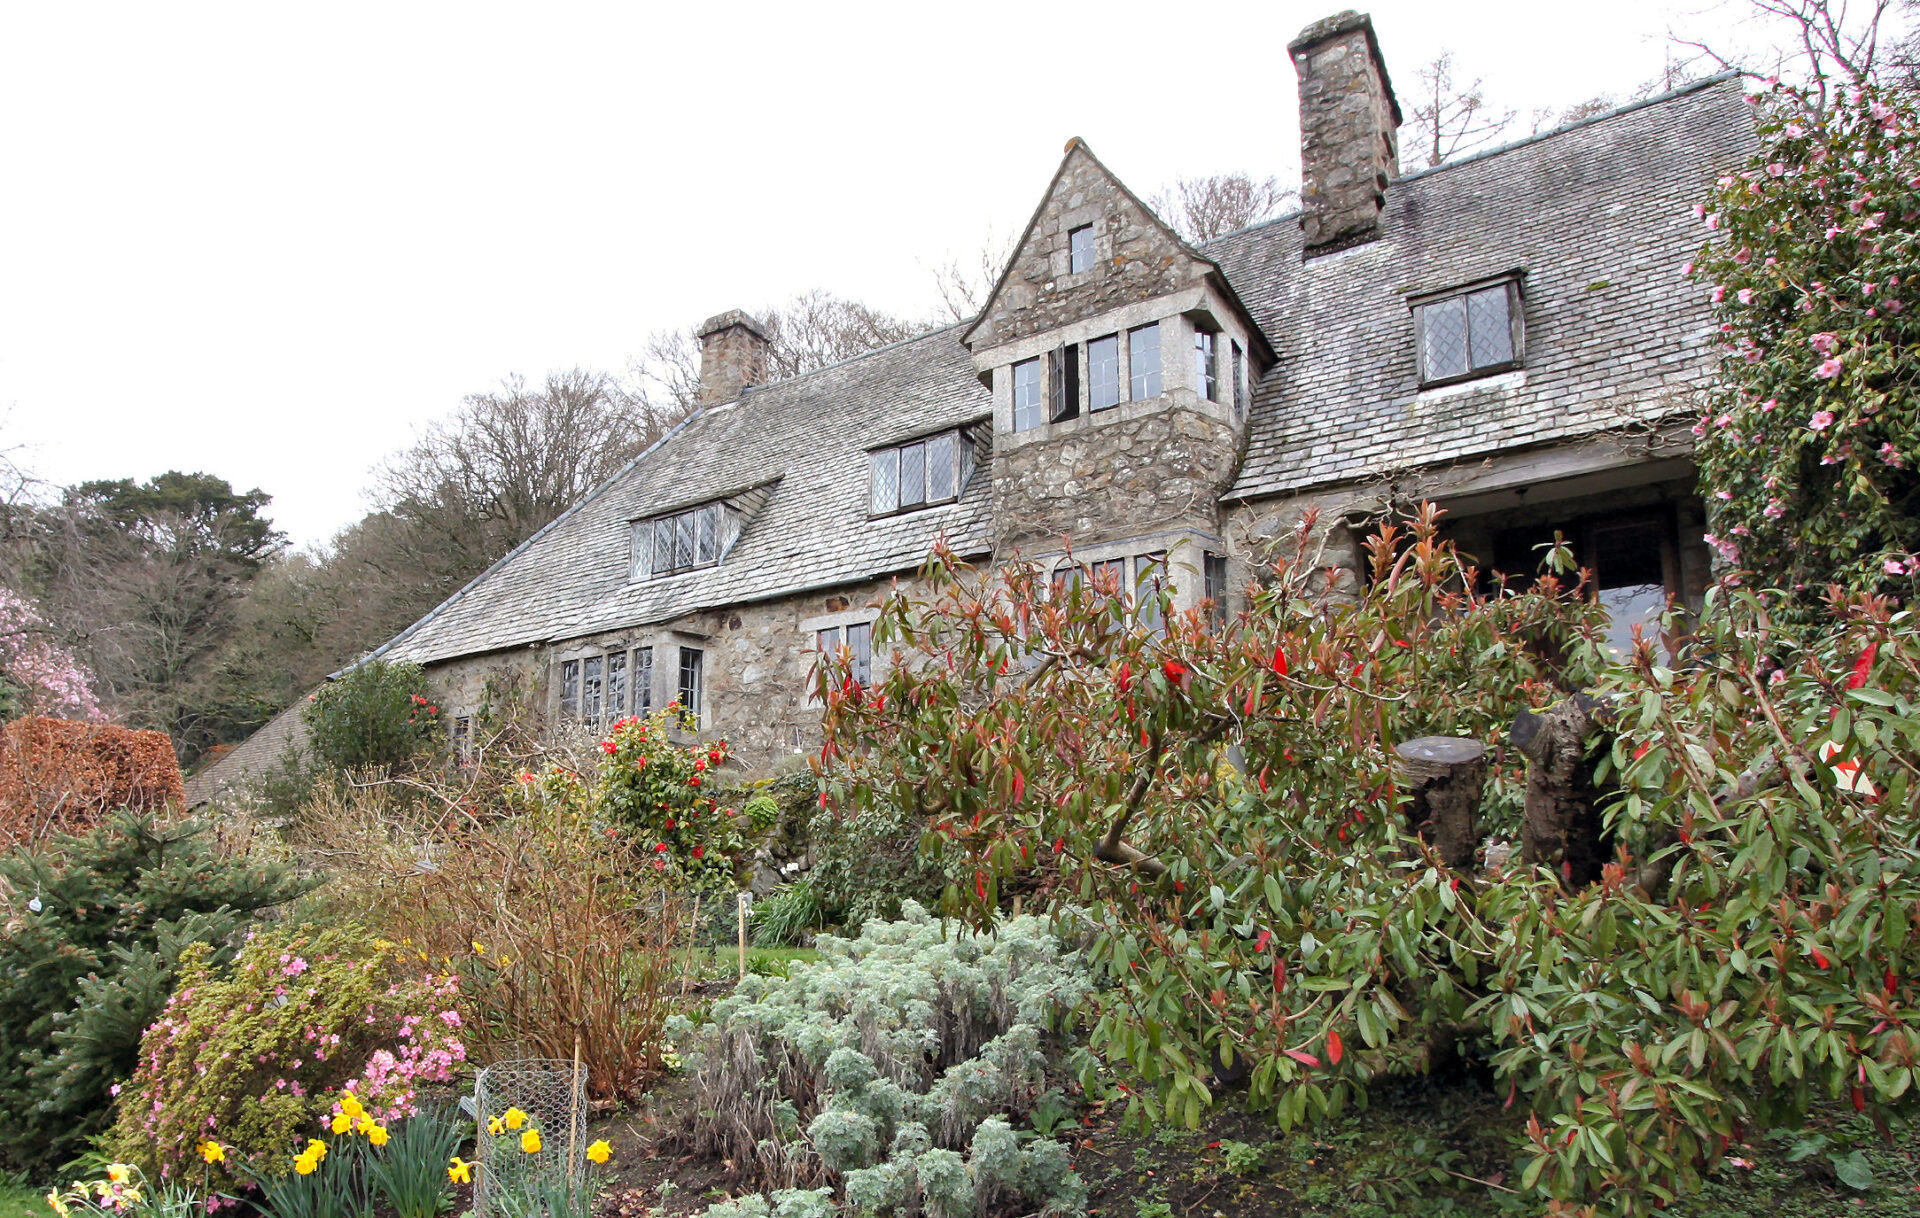 Just one of the many spectacular Dartmoor gardens that open for charity each year.